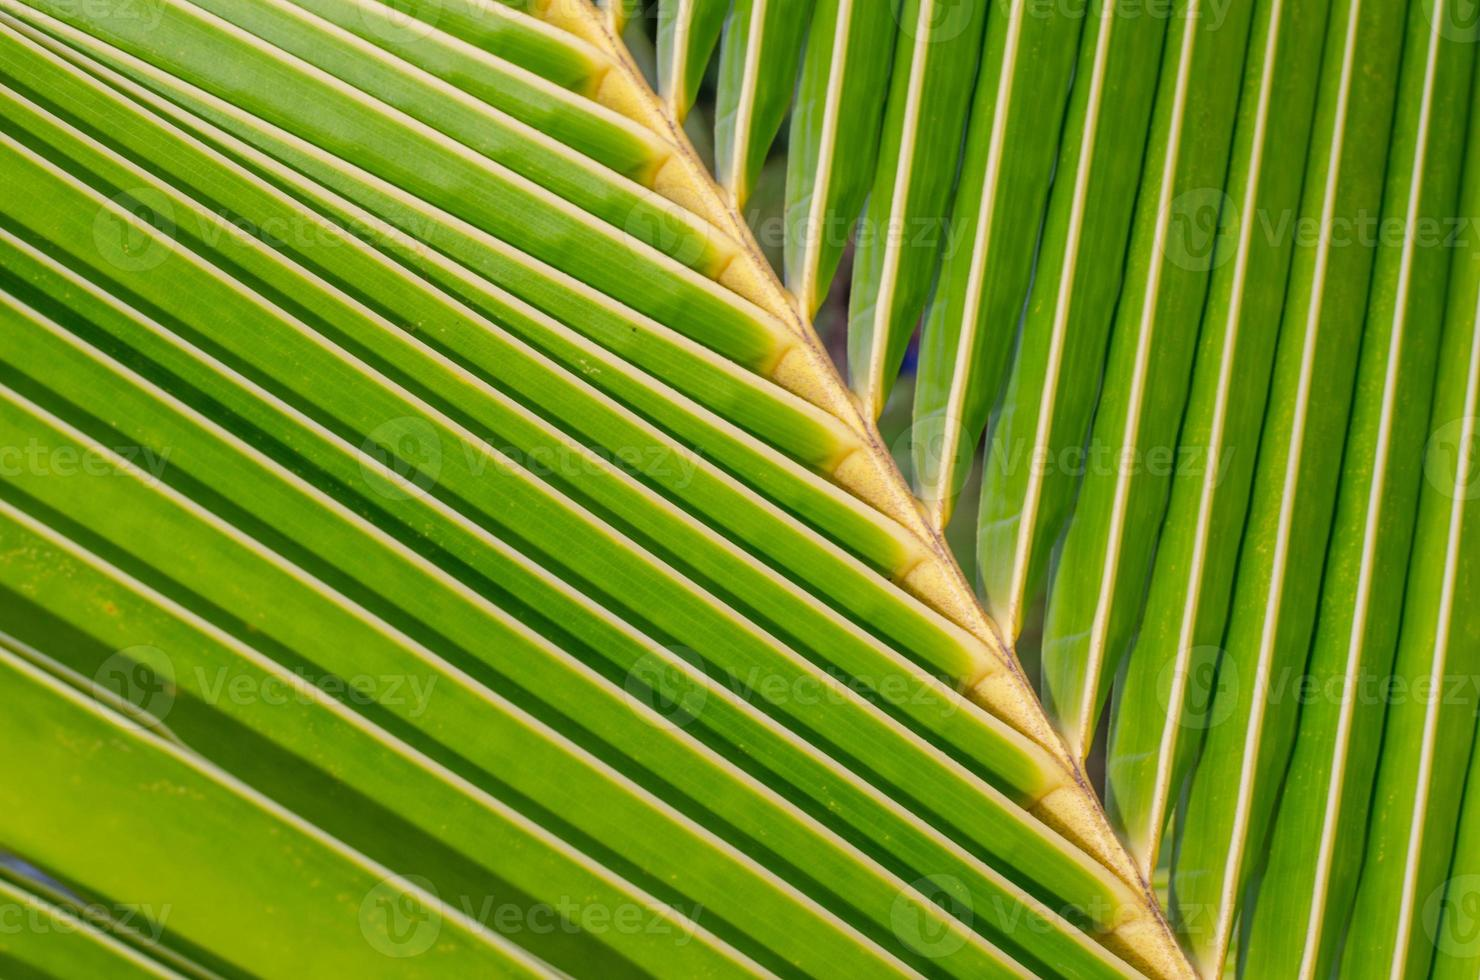 coconut leaf texture photo